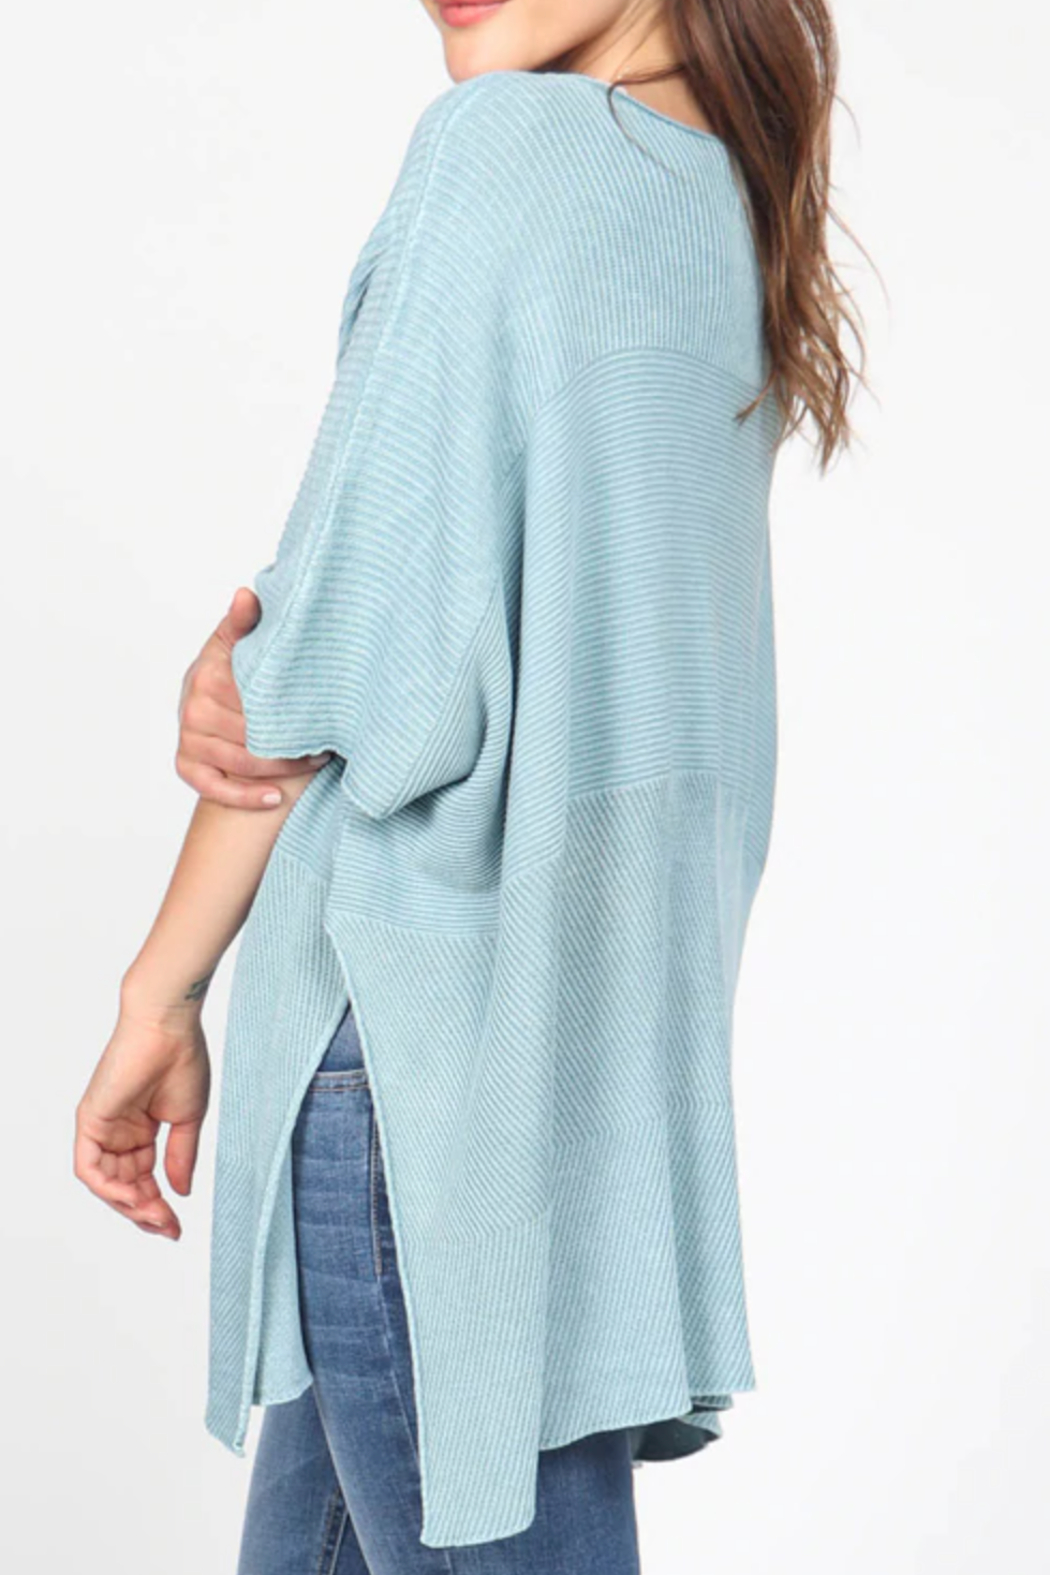 M. Rena Mineral Wash Scoop Neck Sweater - Front Full Image